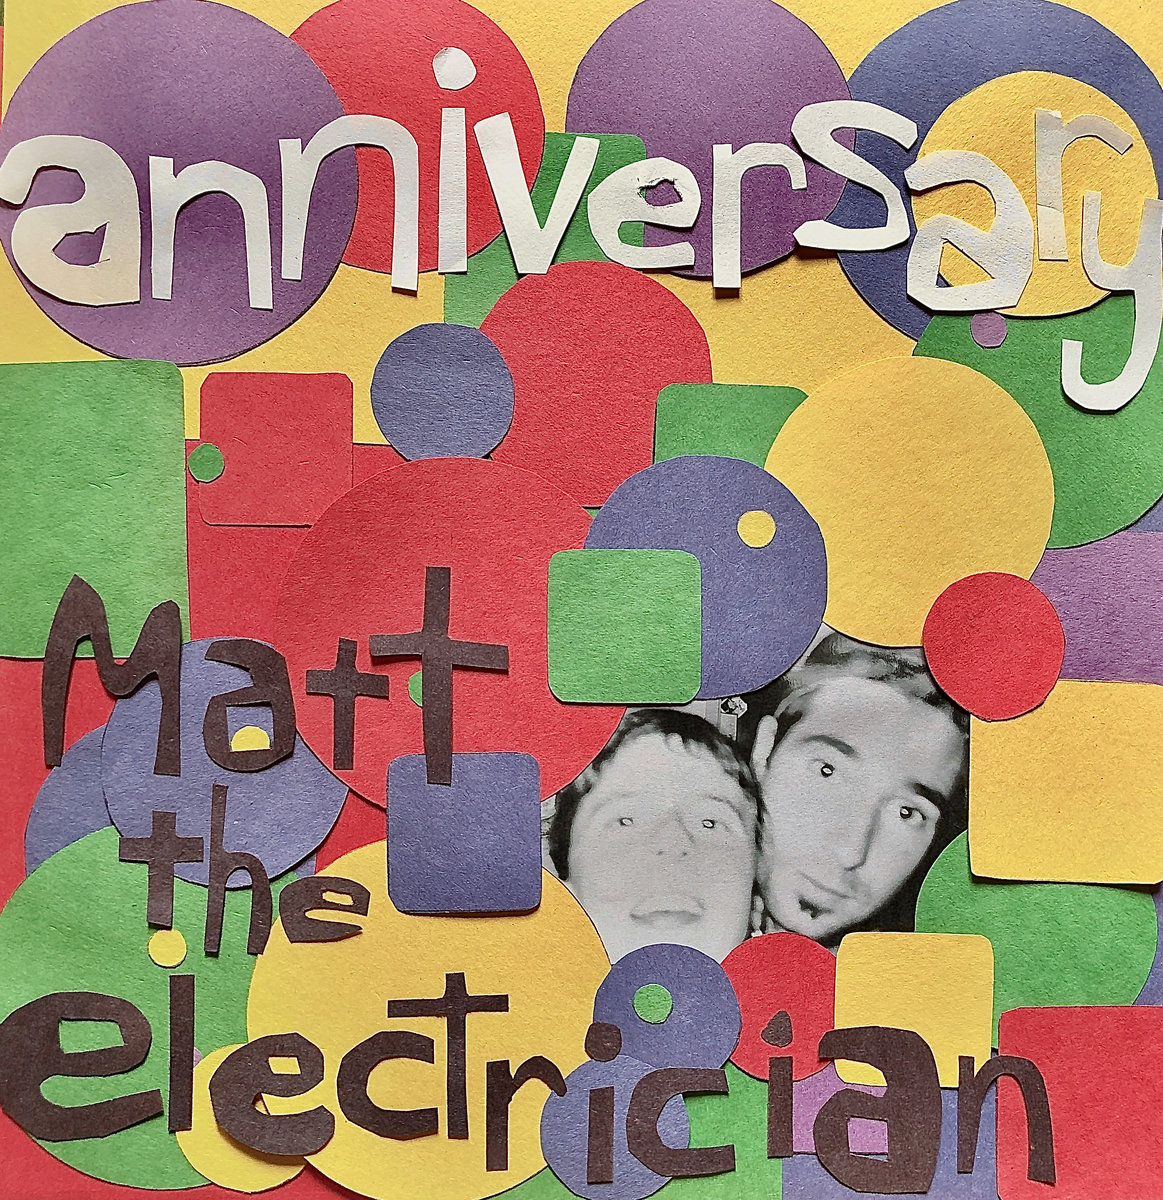 Anniversary by Matt the Electrician